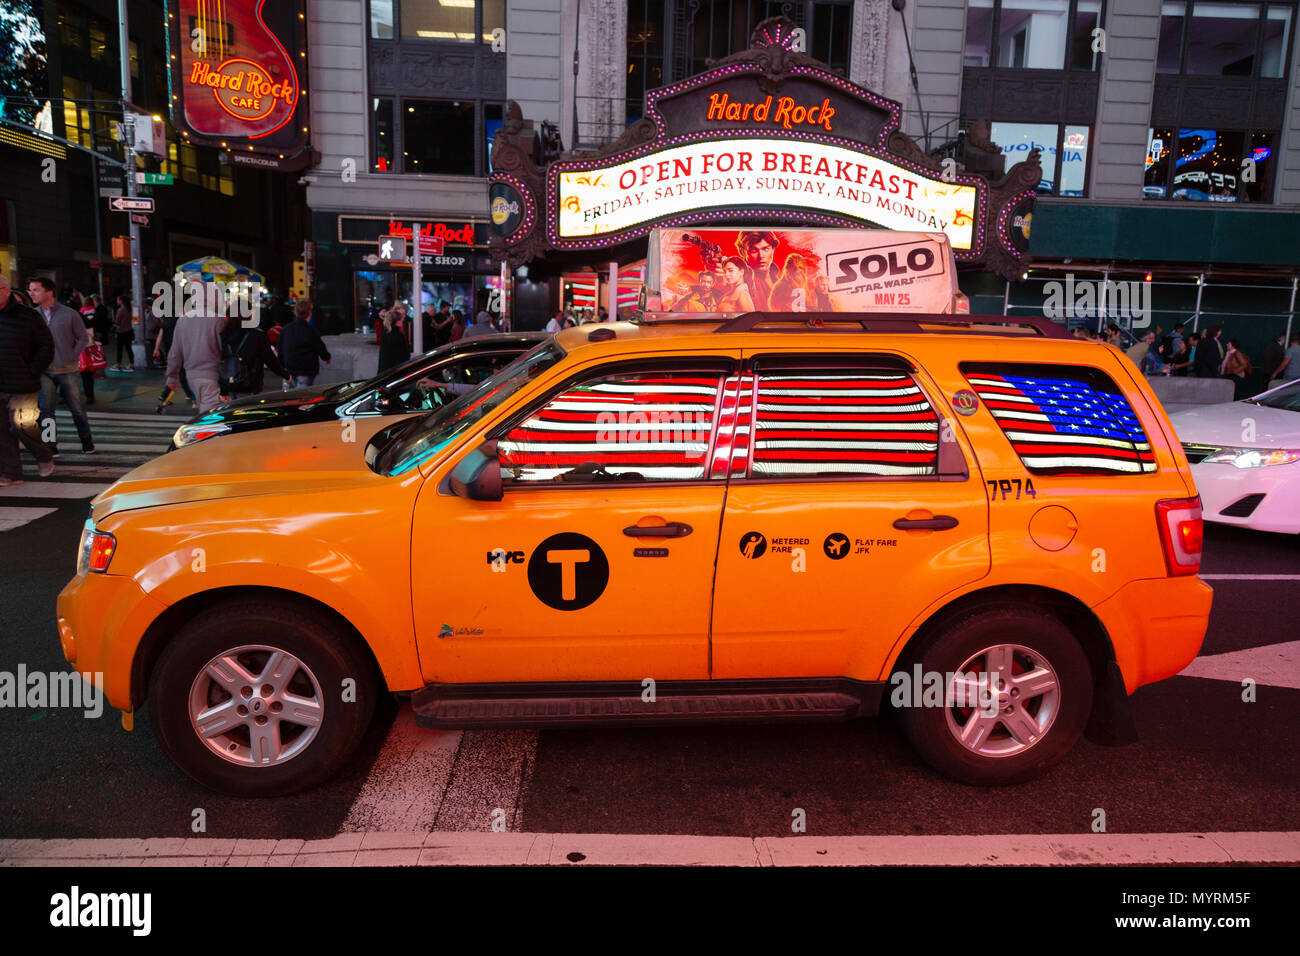 a-yellow-new-york-taxi-cab-reflecting-the-american-flag-times-square-new-york-cityusa-MYRM5F.jpg